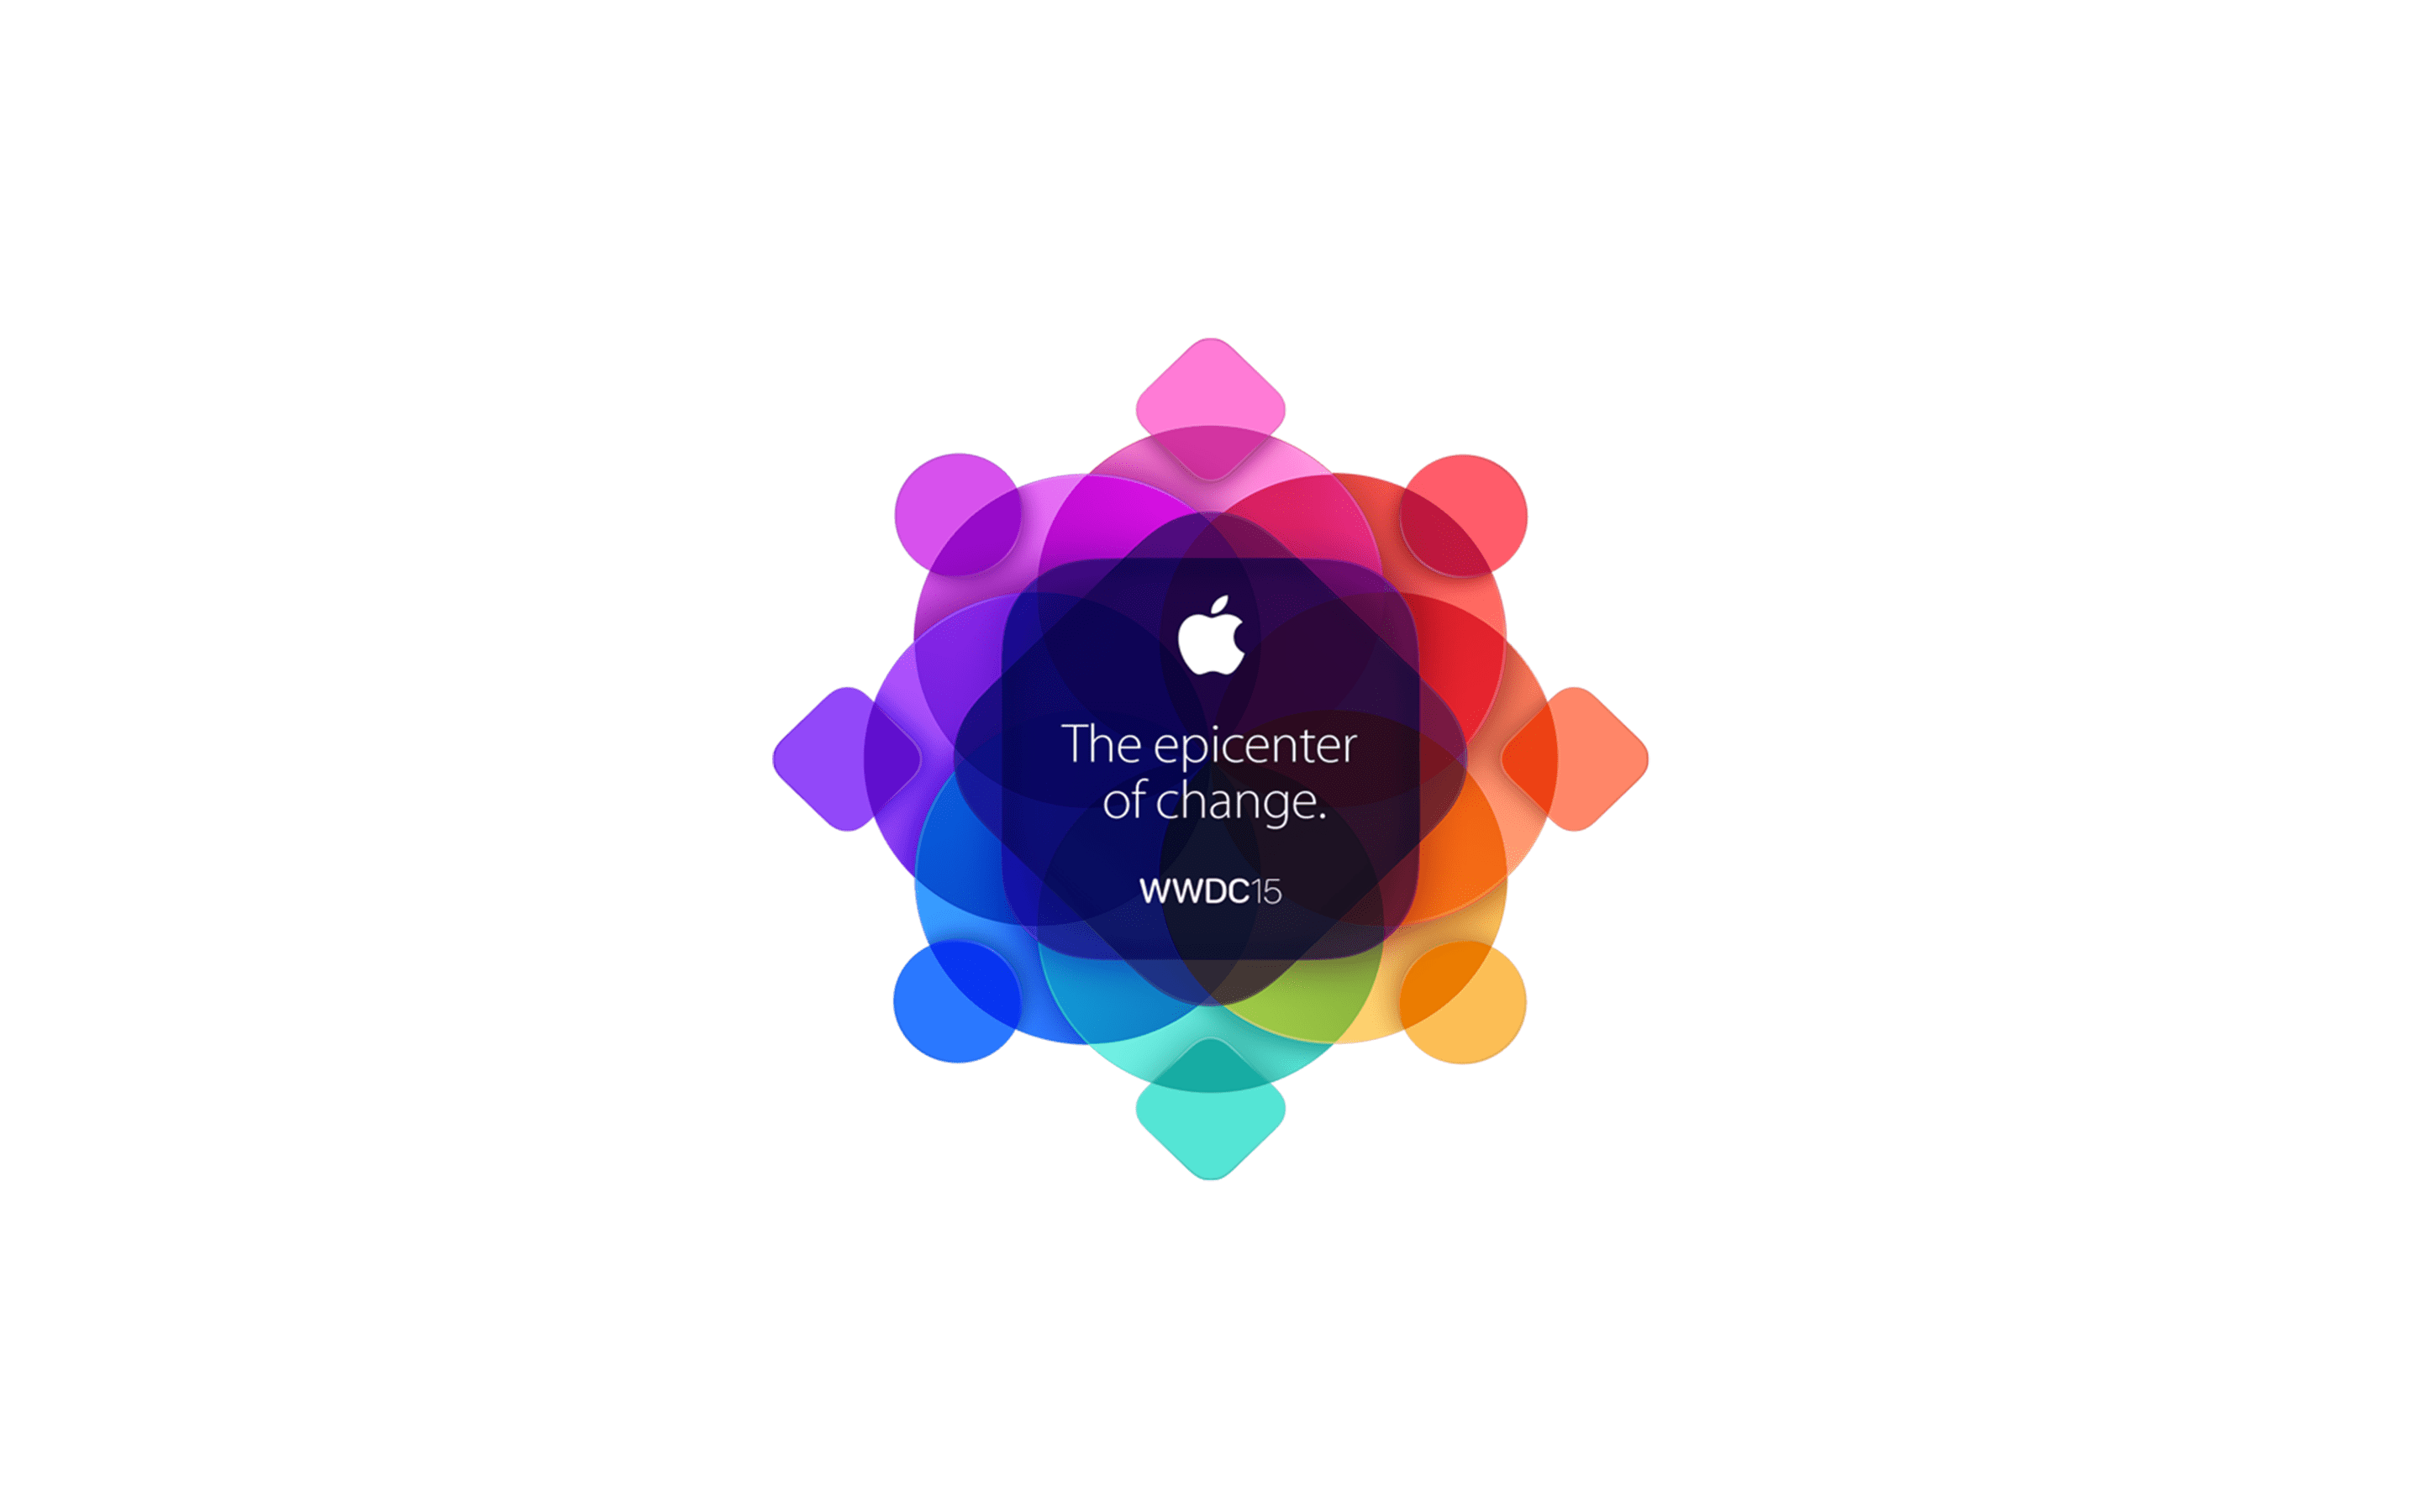 WWDC-2015-Wallpaper-for-Mac 2880 x 1800